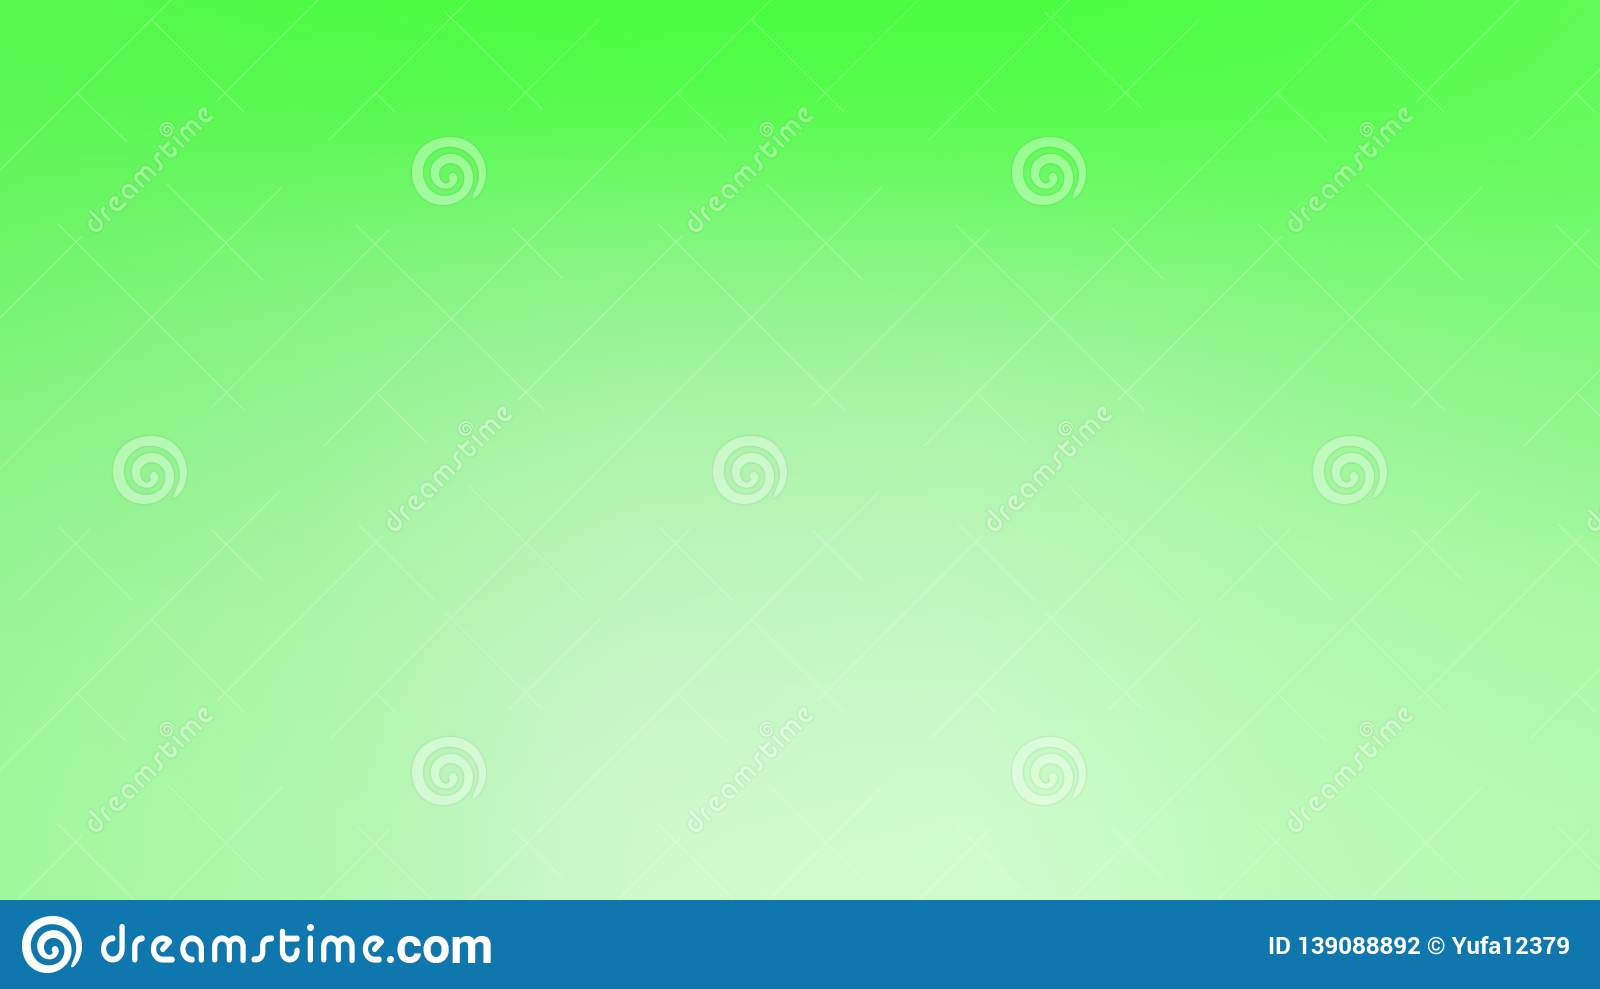 Ecology Concept Green Abstract Background Nature Soft